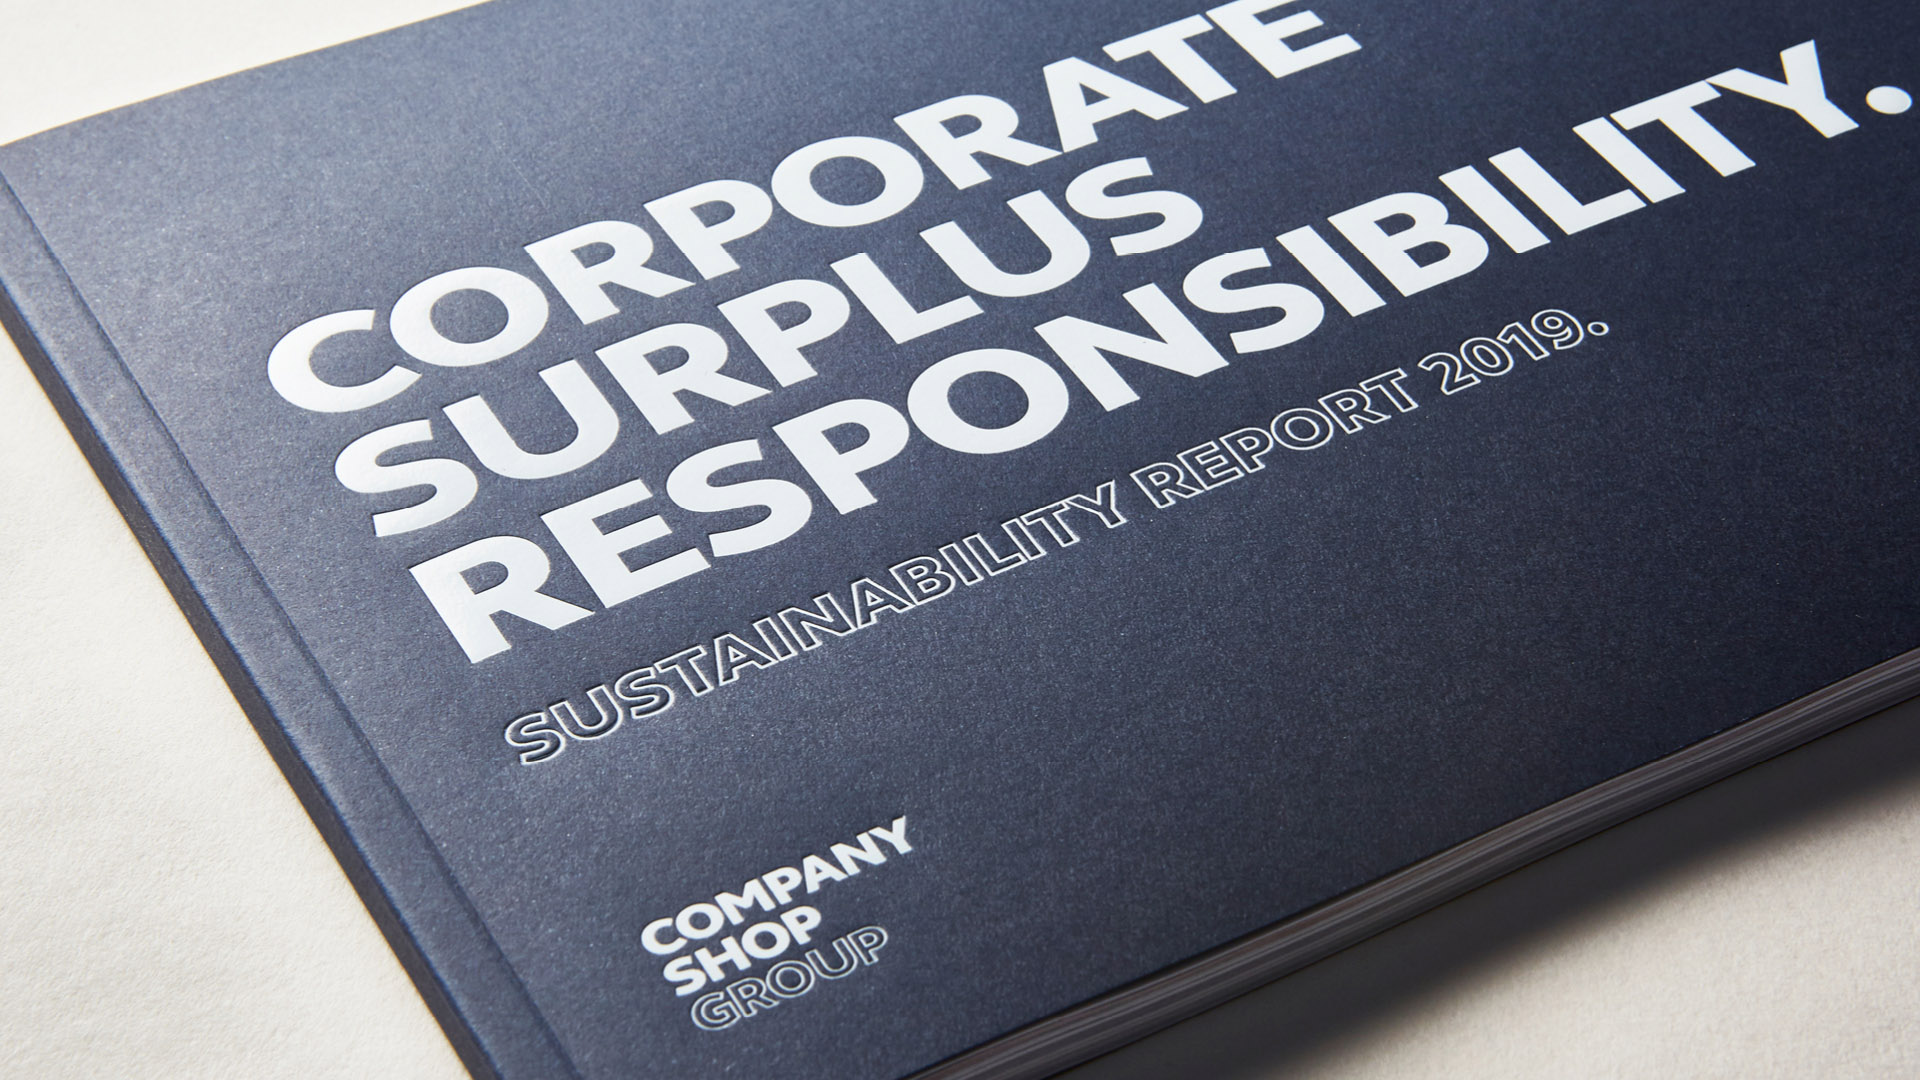 Corporate Surplus Responsibility report cover sirio dark blue